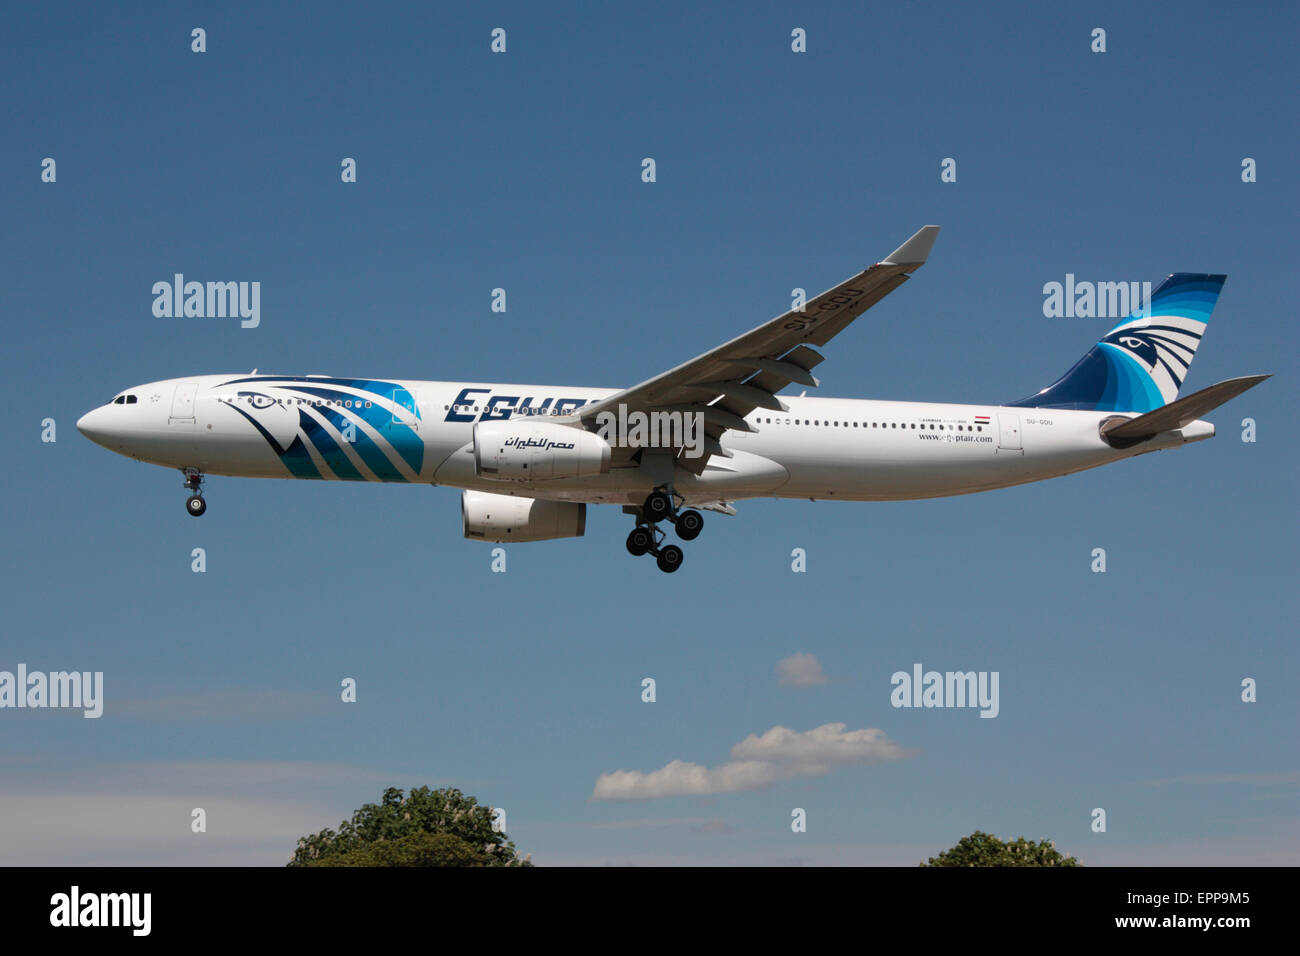 Egyptair Airbus A330-300 on approach to London Heathrow - Stock Image